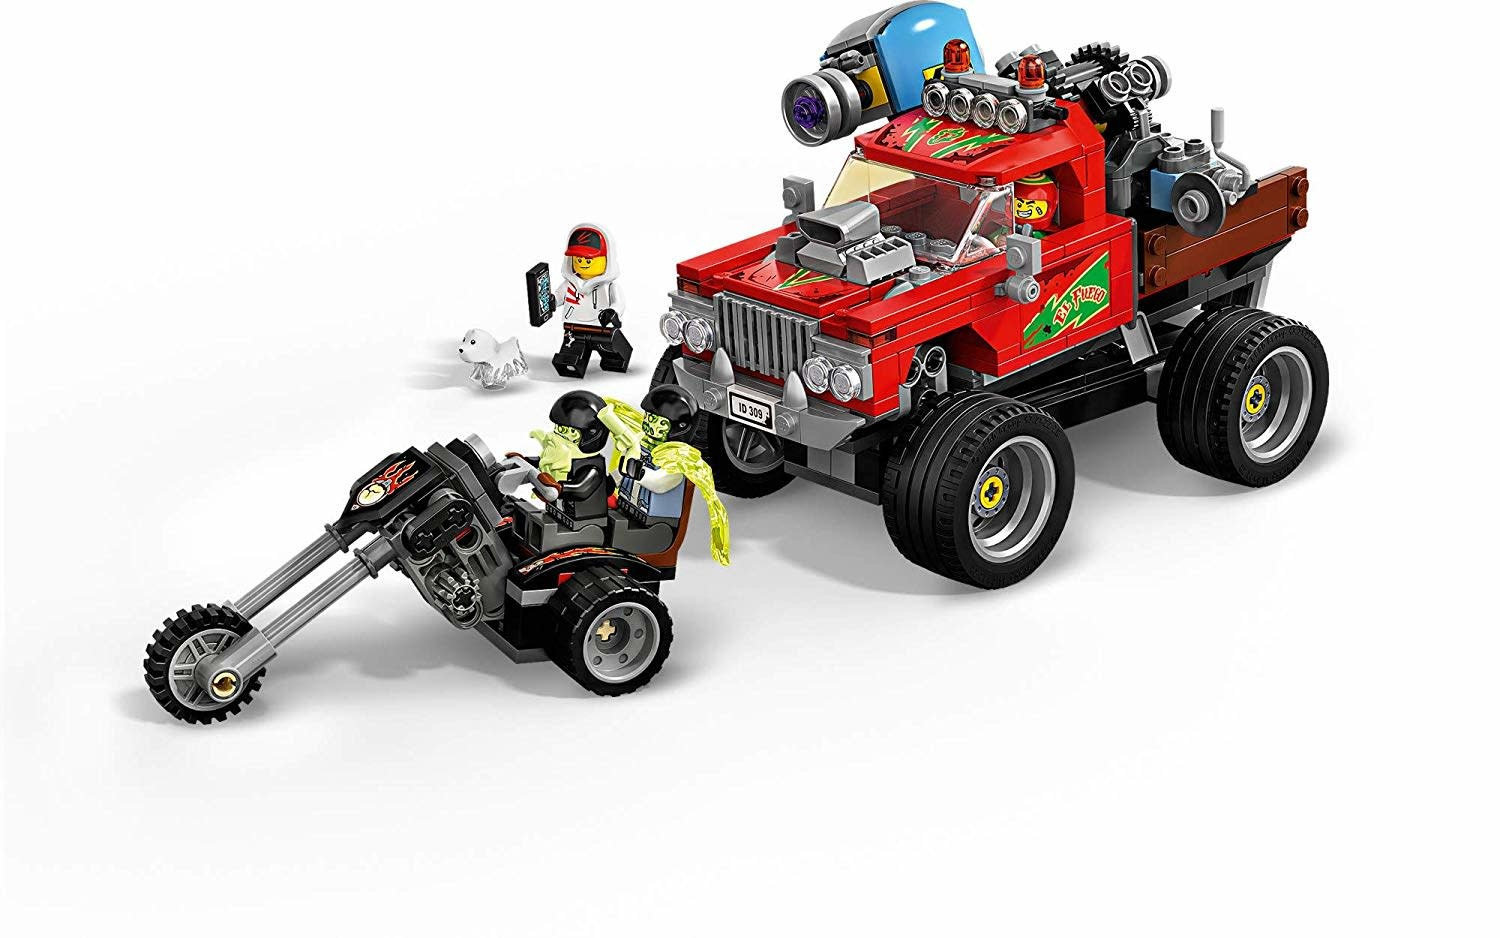 El Fuego's Stunt Truck 70421 by LEGO Hidden Side